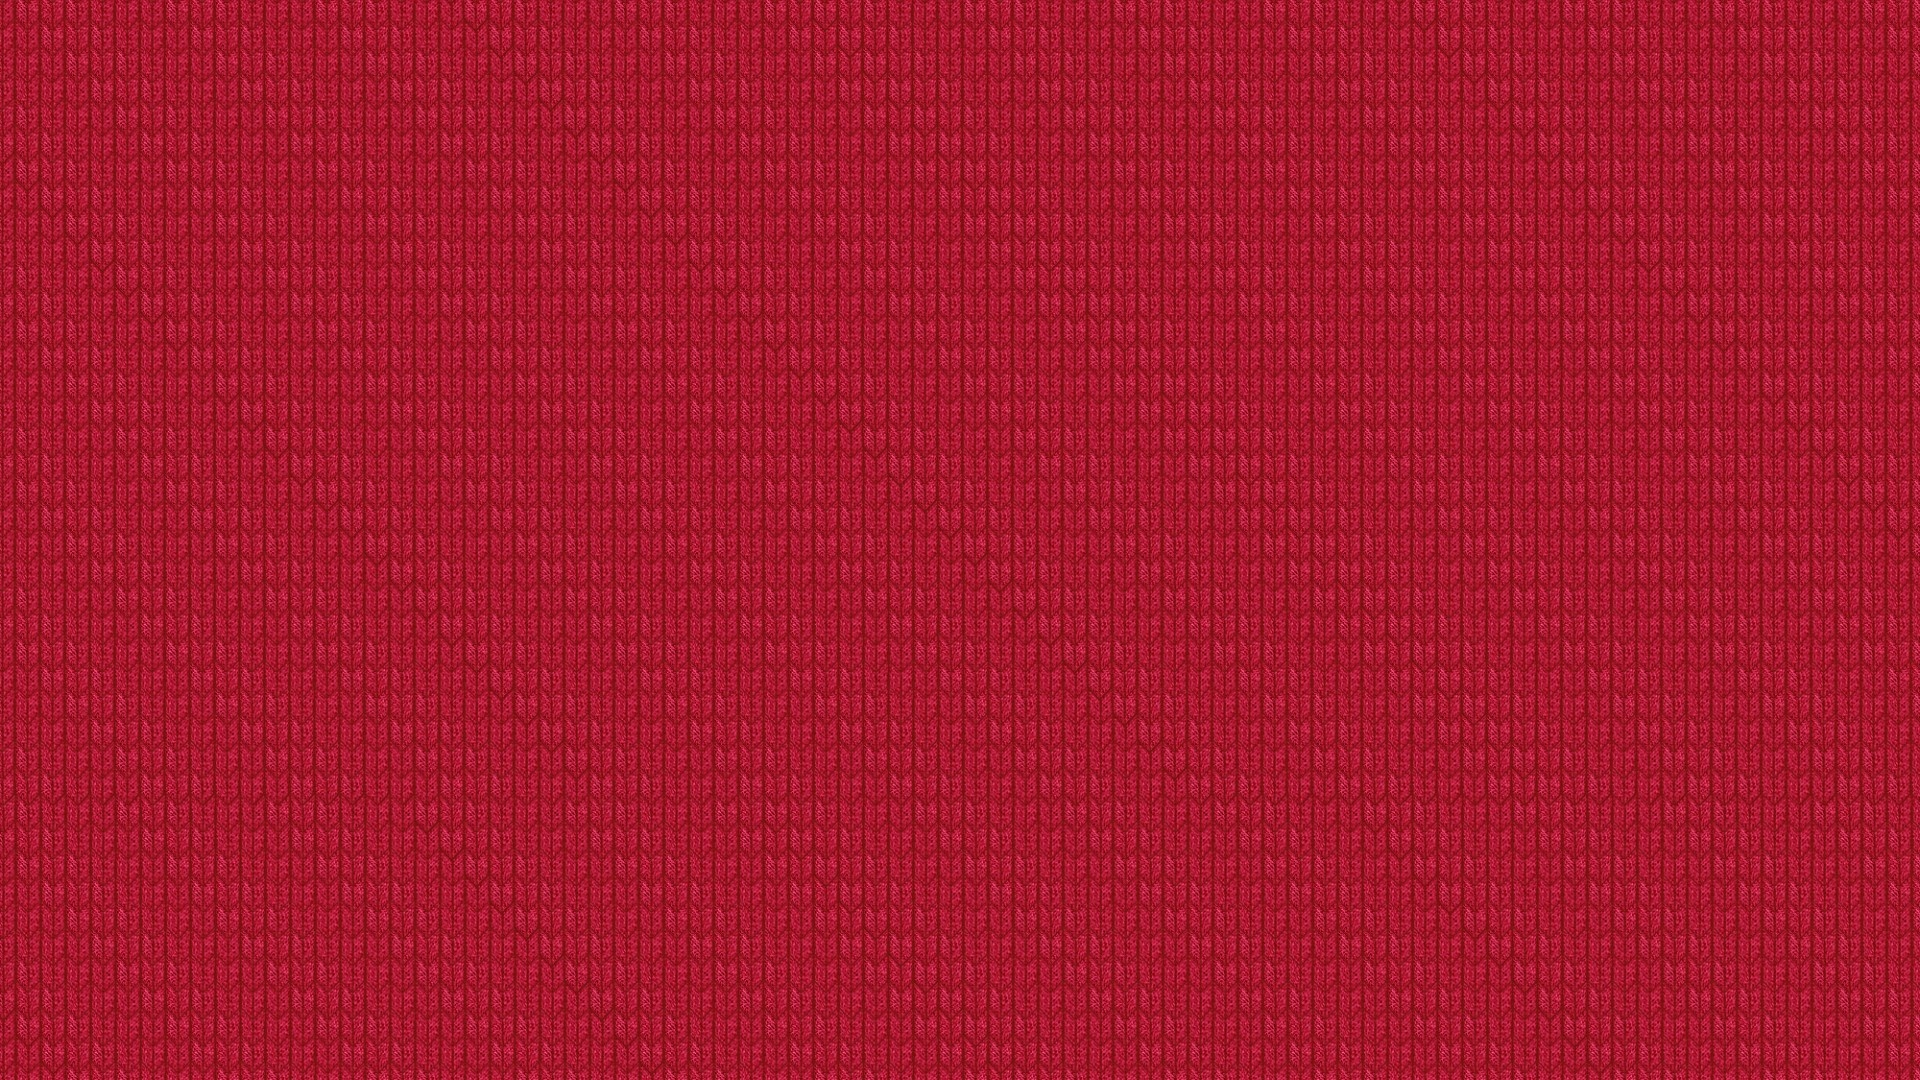 Solid Red hd wallpaper 1080